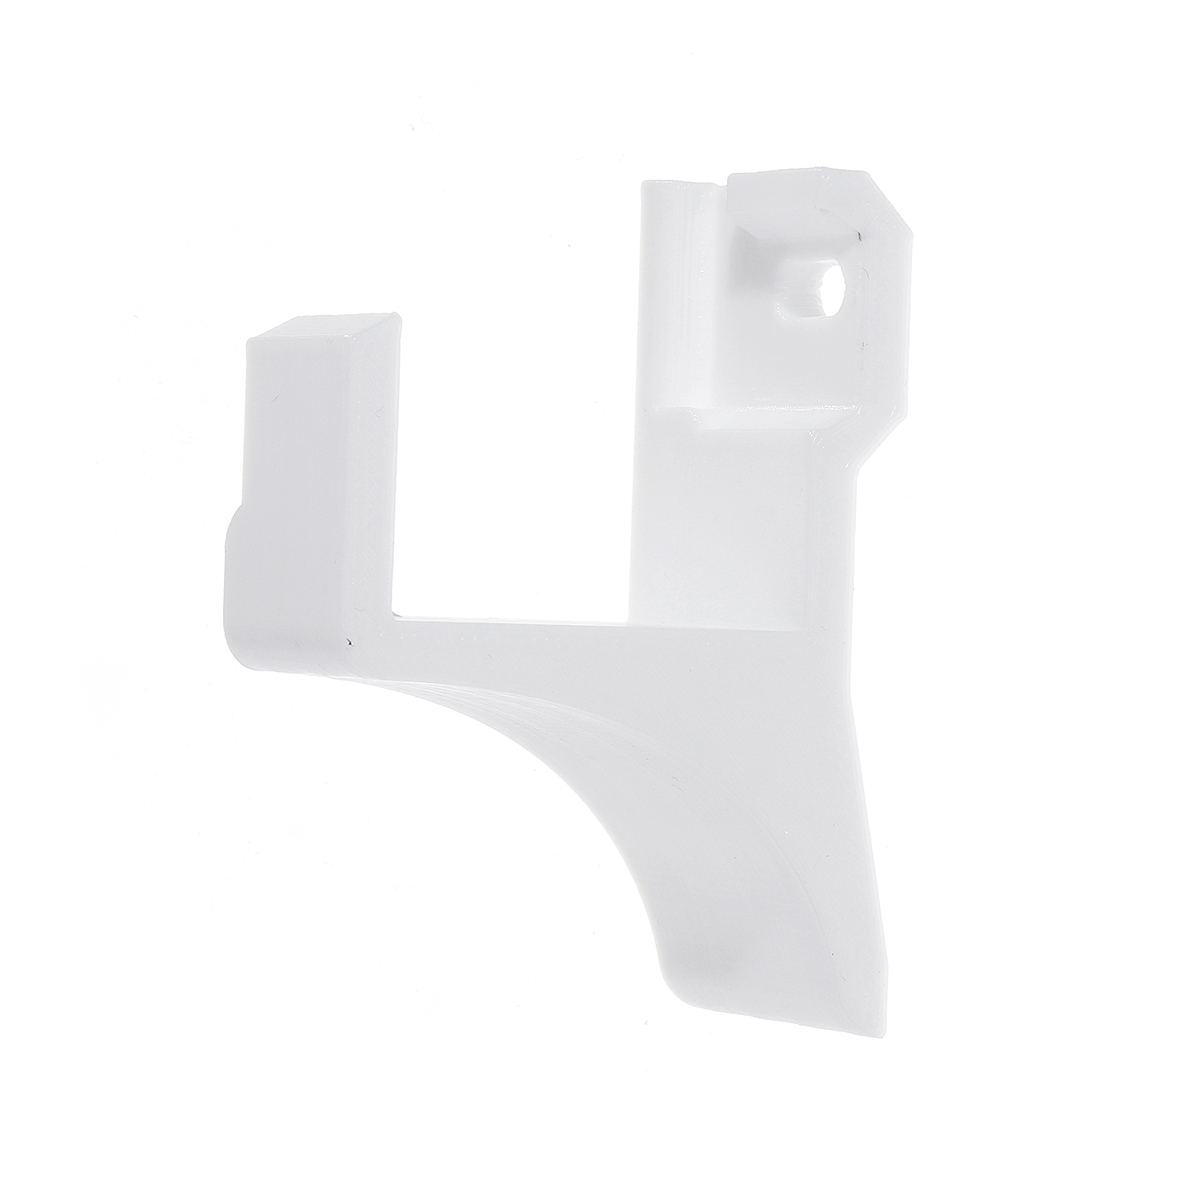 Wall Mount Bracket for Sony Playstation PS4 Pro Slim Console Stand Holder Handheld Stabilizer Bracket 17